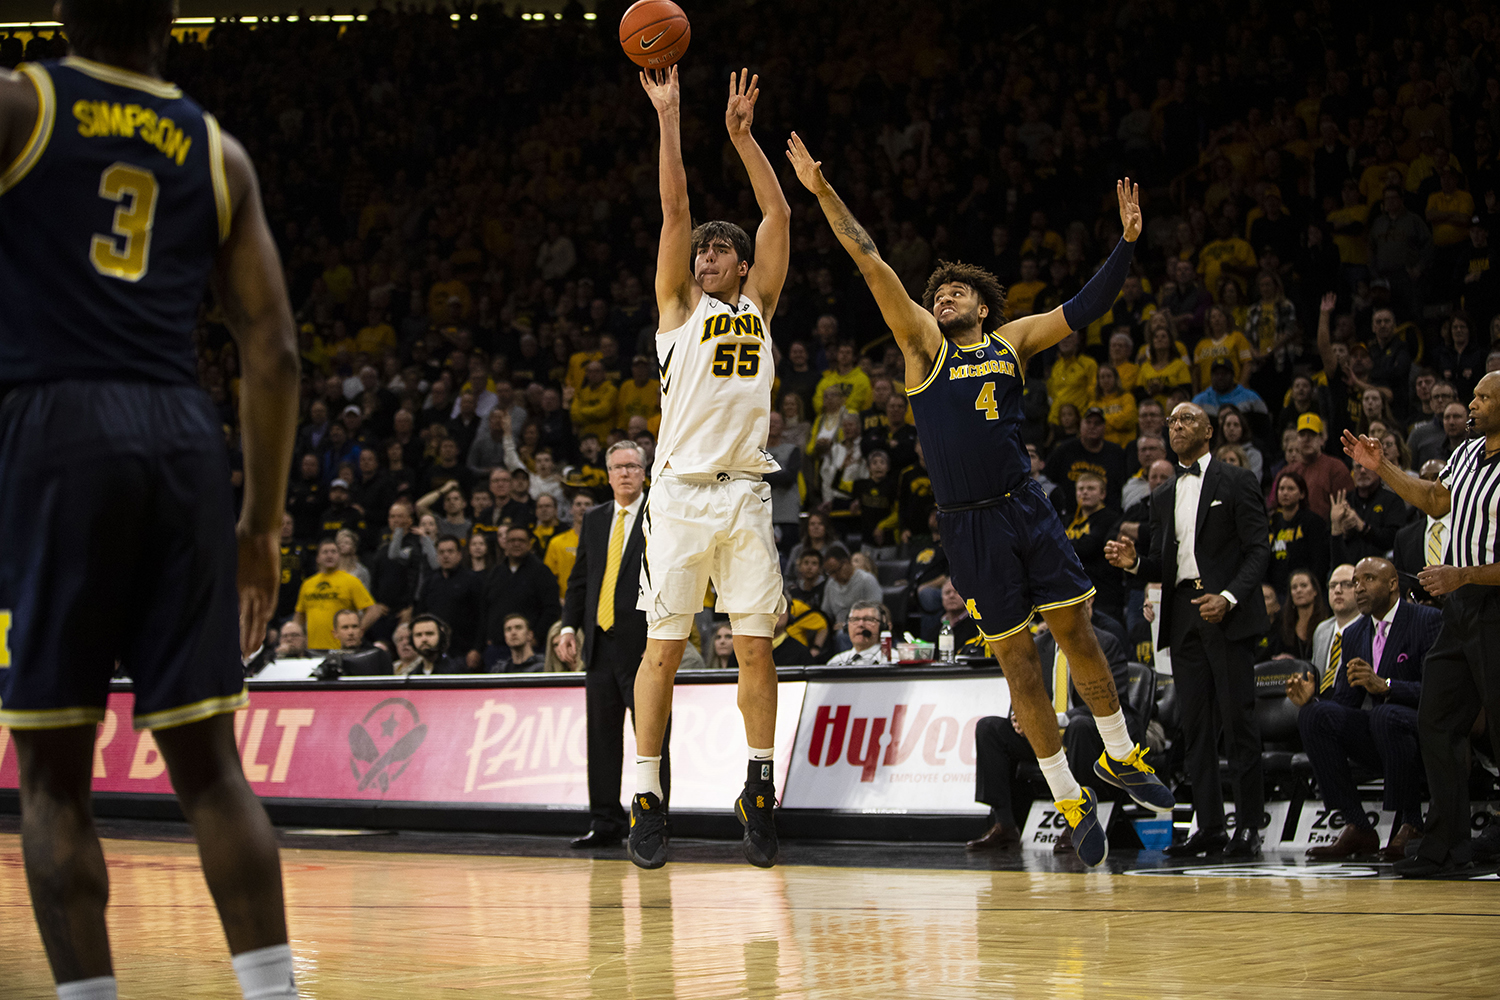 Iowa+forward+Luka+Garza+attempts+a+3-pointer+during+the+Iowa%2FMichigan+men%27s+basketball+game+at+Carver-Hawkeye+Arena+on+Friday%2C+February+1%2C+2019.+The+Hawkeyes+took+down+the+No.+5+ranked+Wolverines%2C+74-59.+